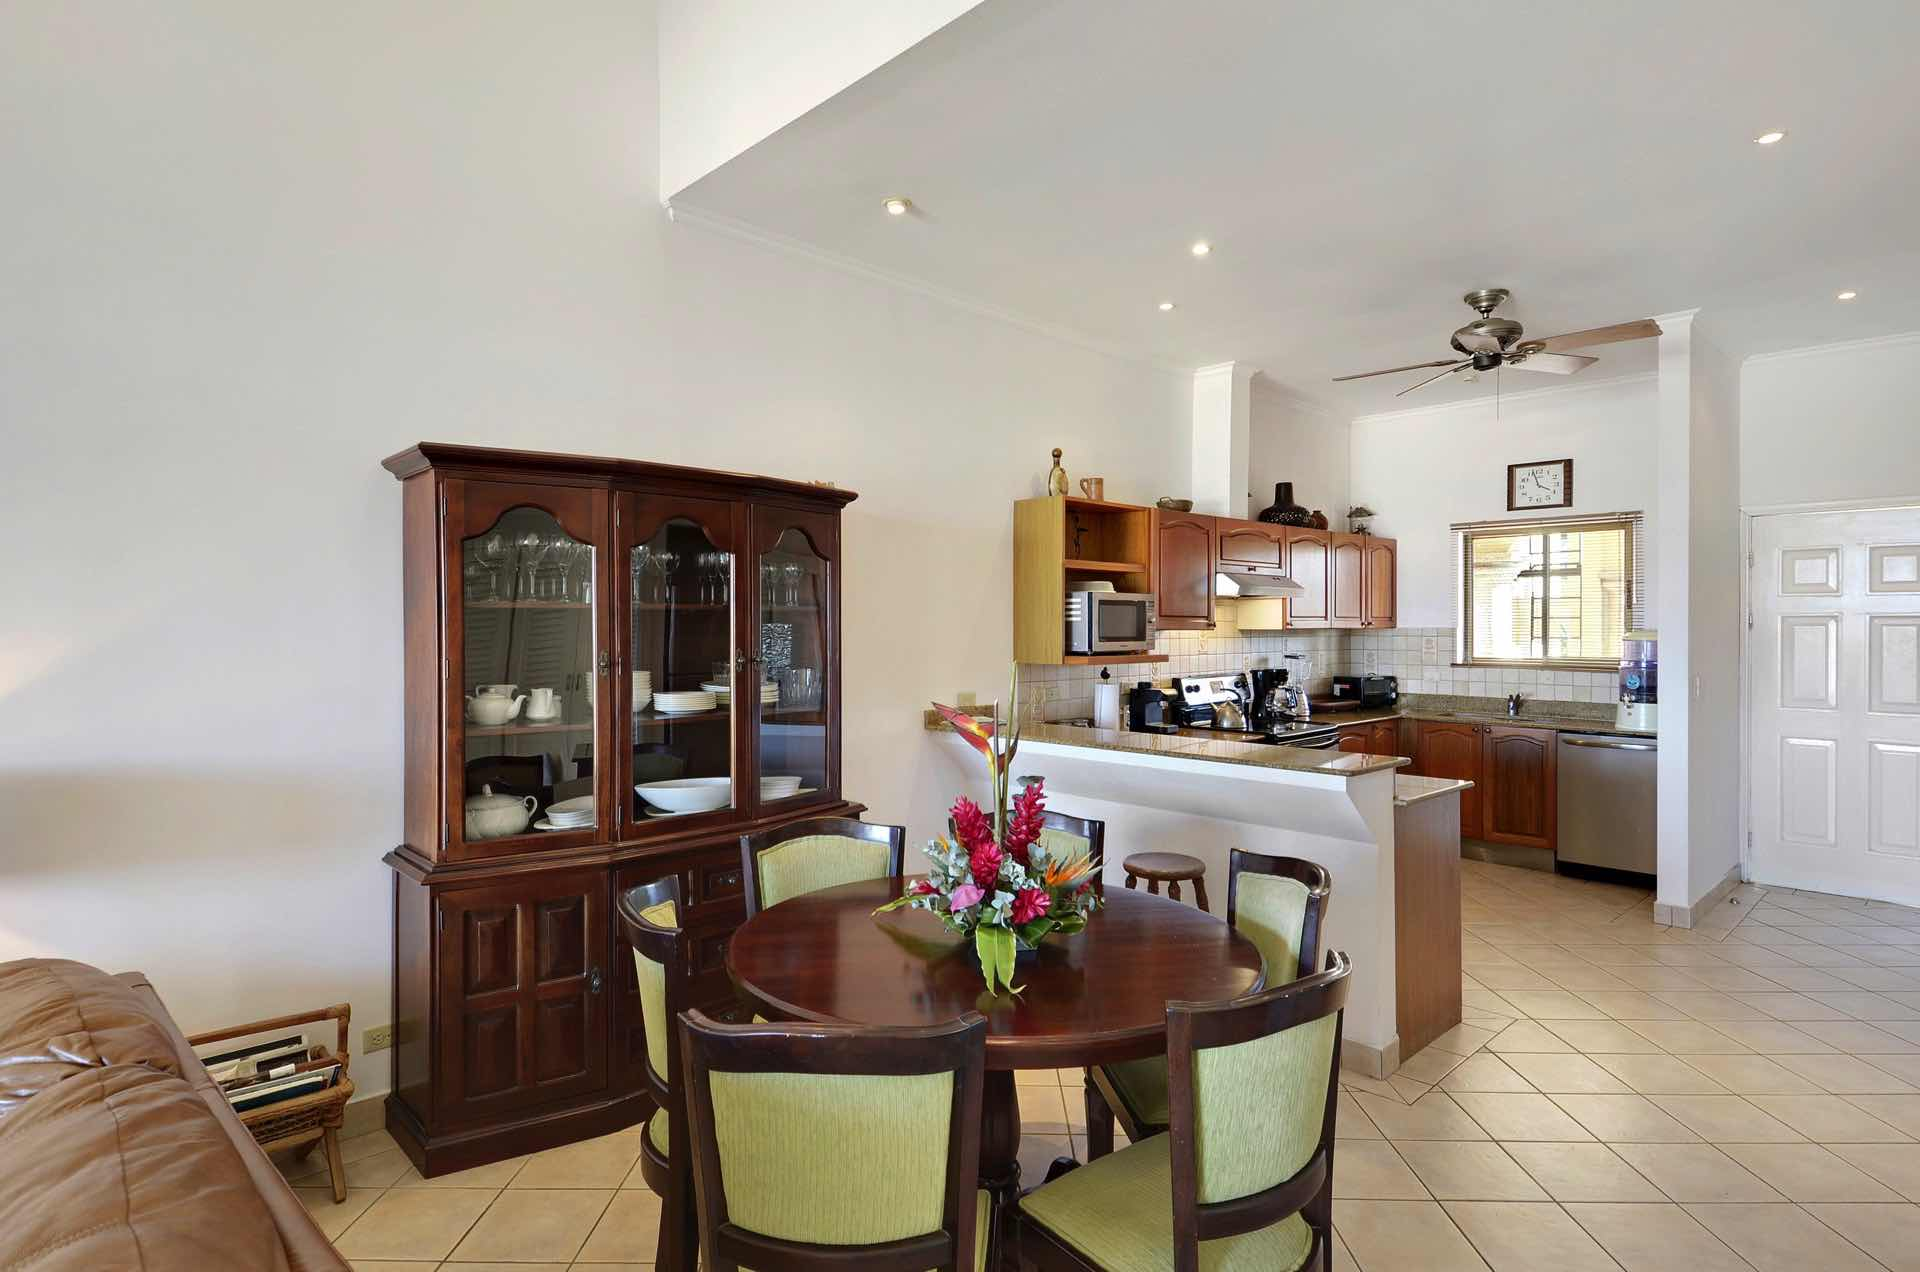 Homey kitchen and dining area